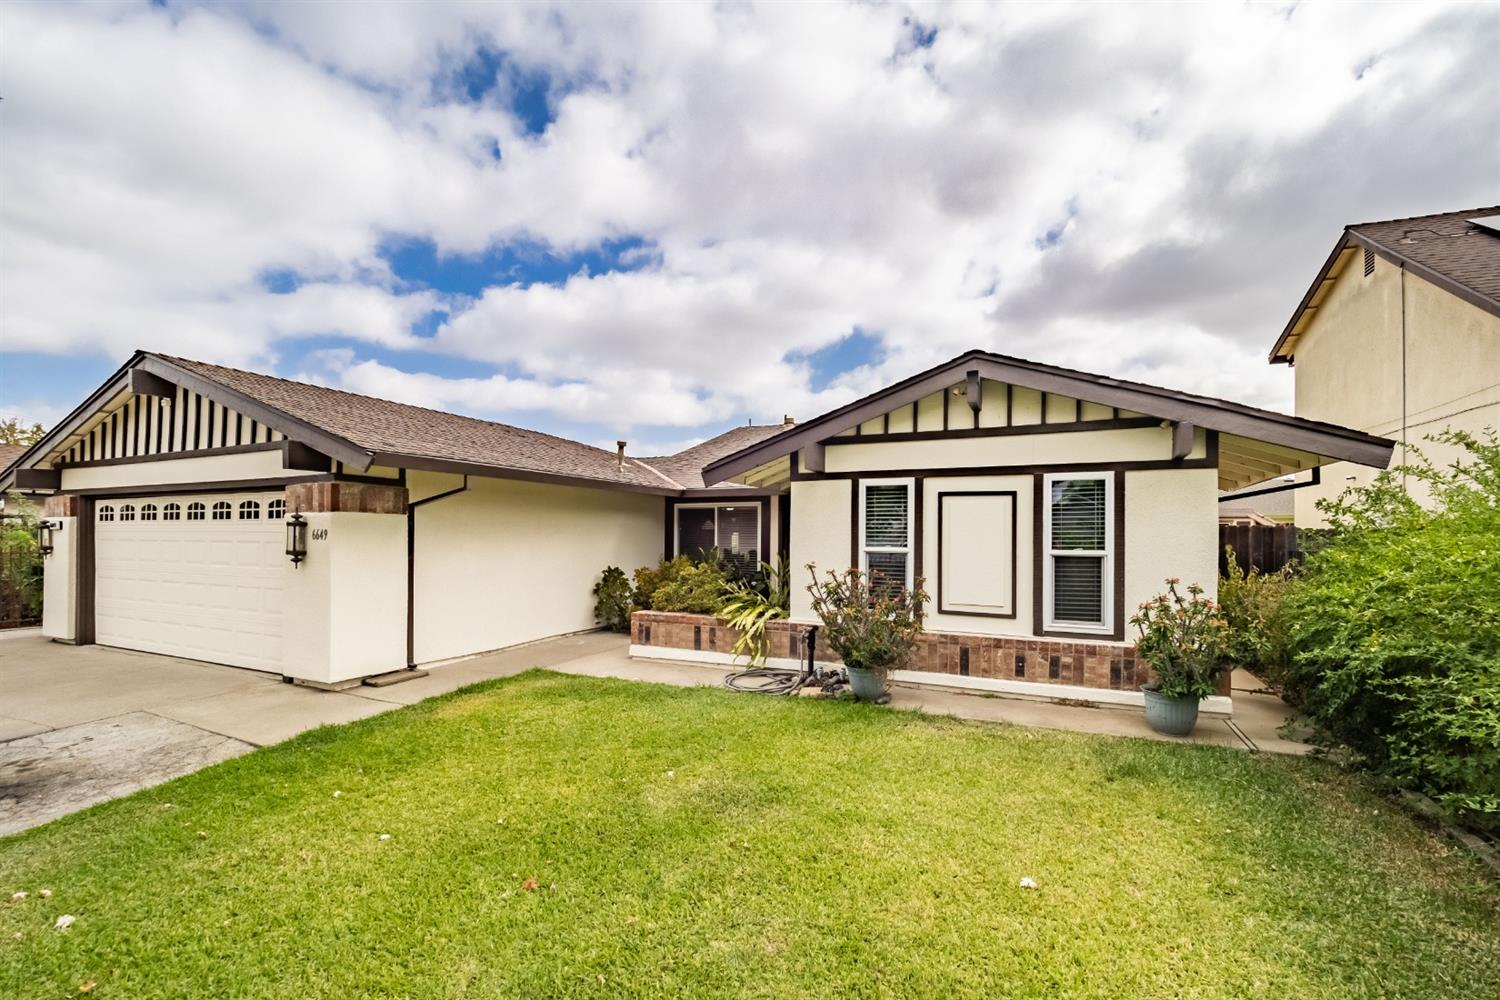 This wonderful 4 bedroom 2 bathroom home features a living room with separate family room, a wide pa